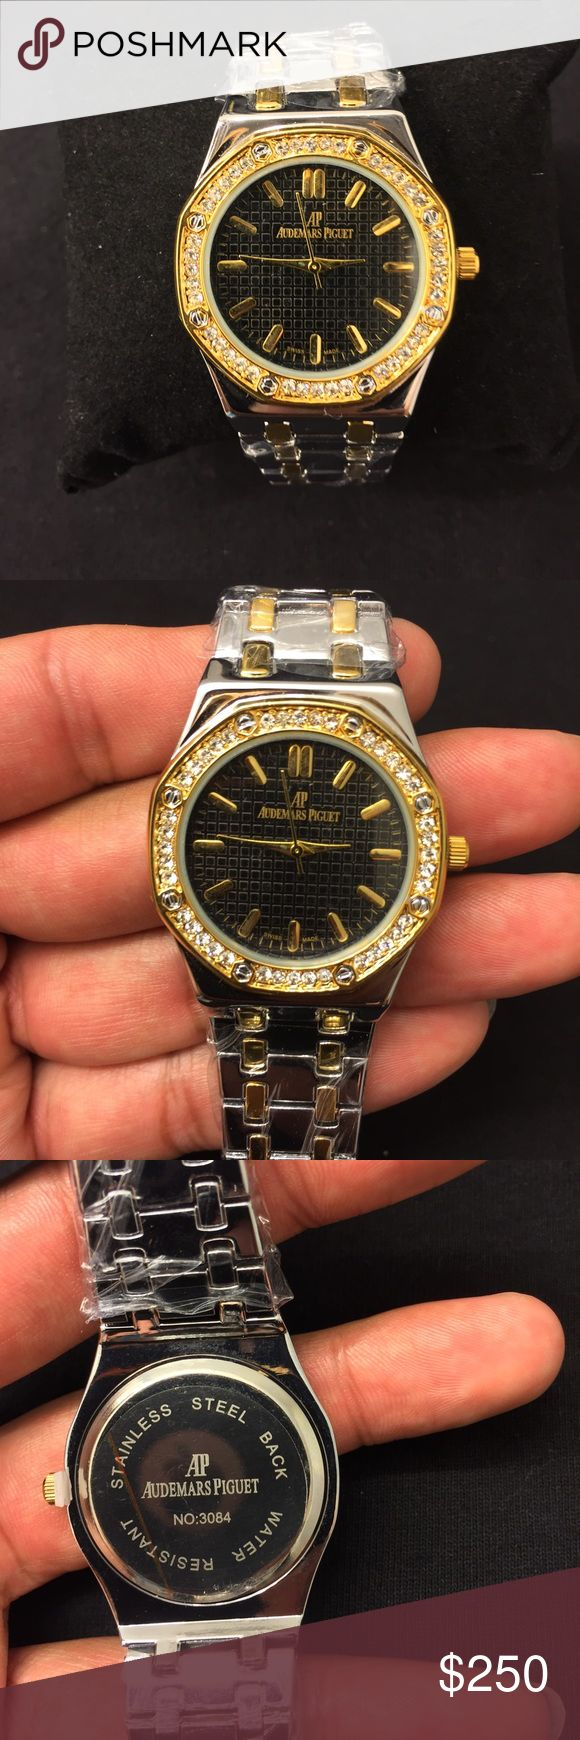 Audemars Piguet AP Ladies Watch Ladies Audemars Piguet AP Cubic Zirconia Bezel two tone silver and gold watch for sale! (Rep) very nice and elegant! Audemars Piguet Accessories Watches